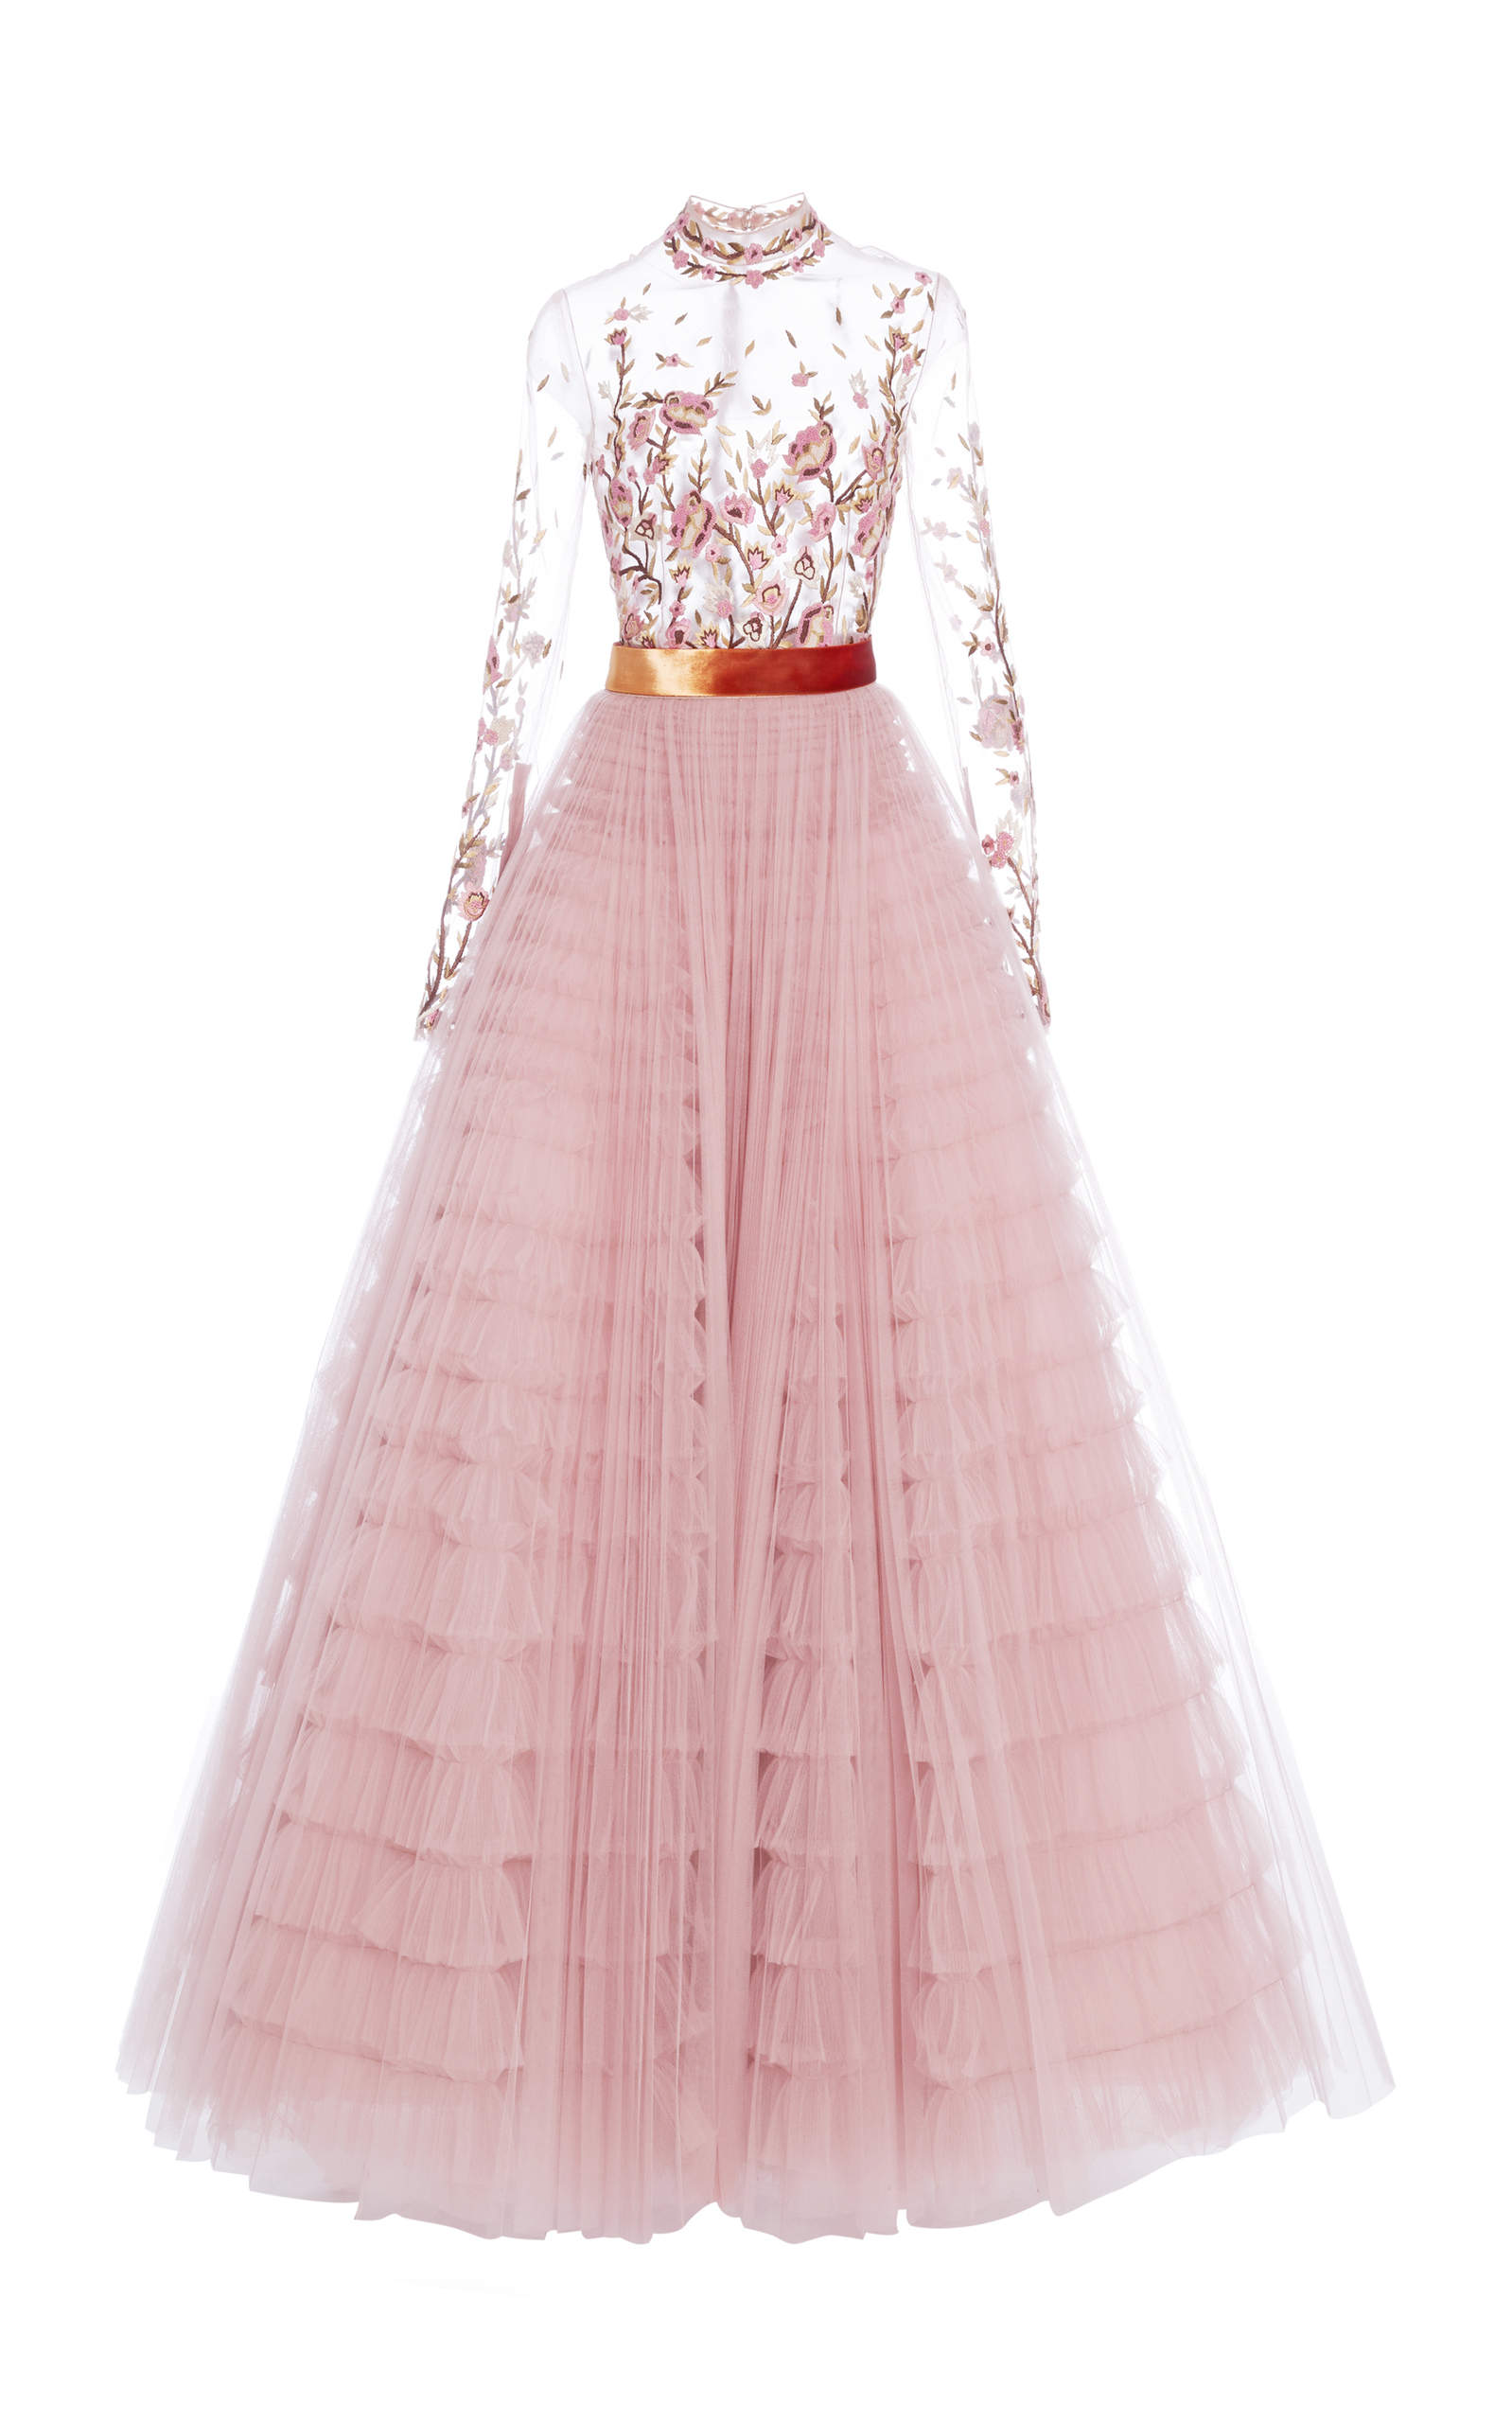 08d0fcf7d7 Floral Embroidered Tulle Gown by J. Mendel